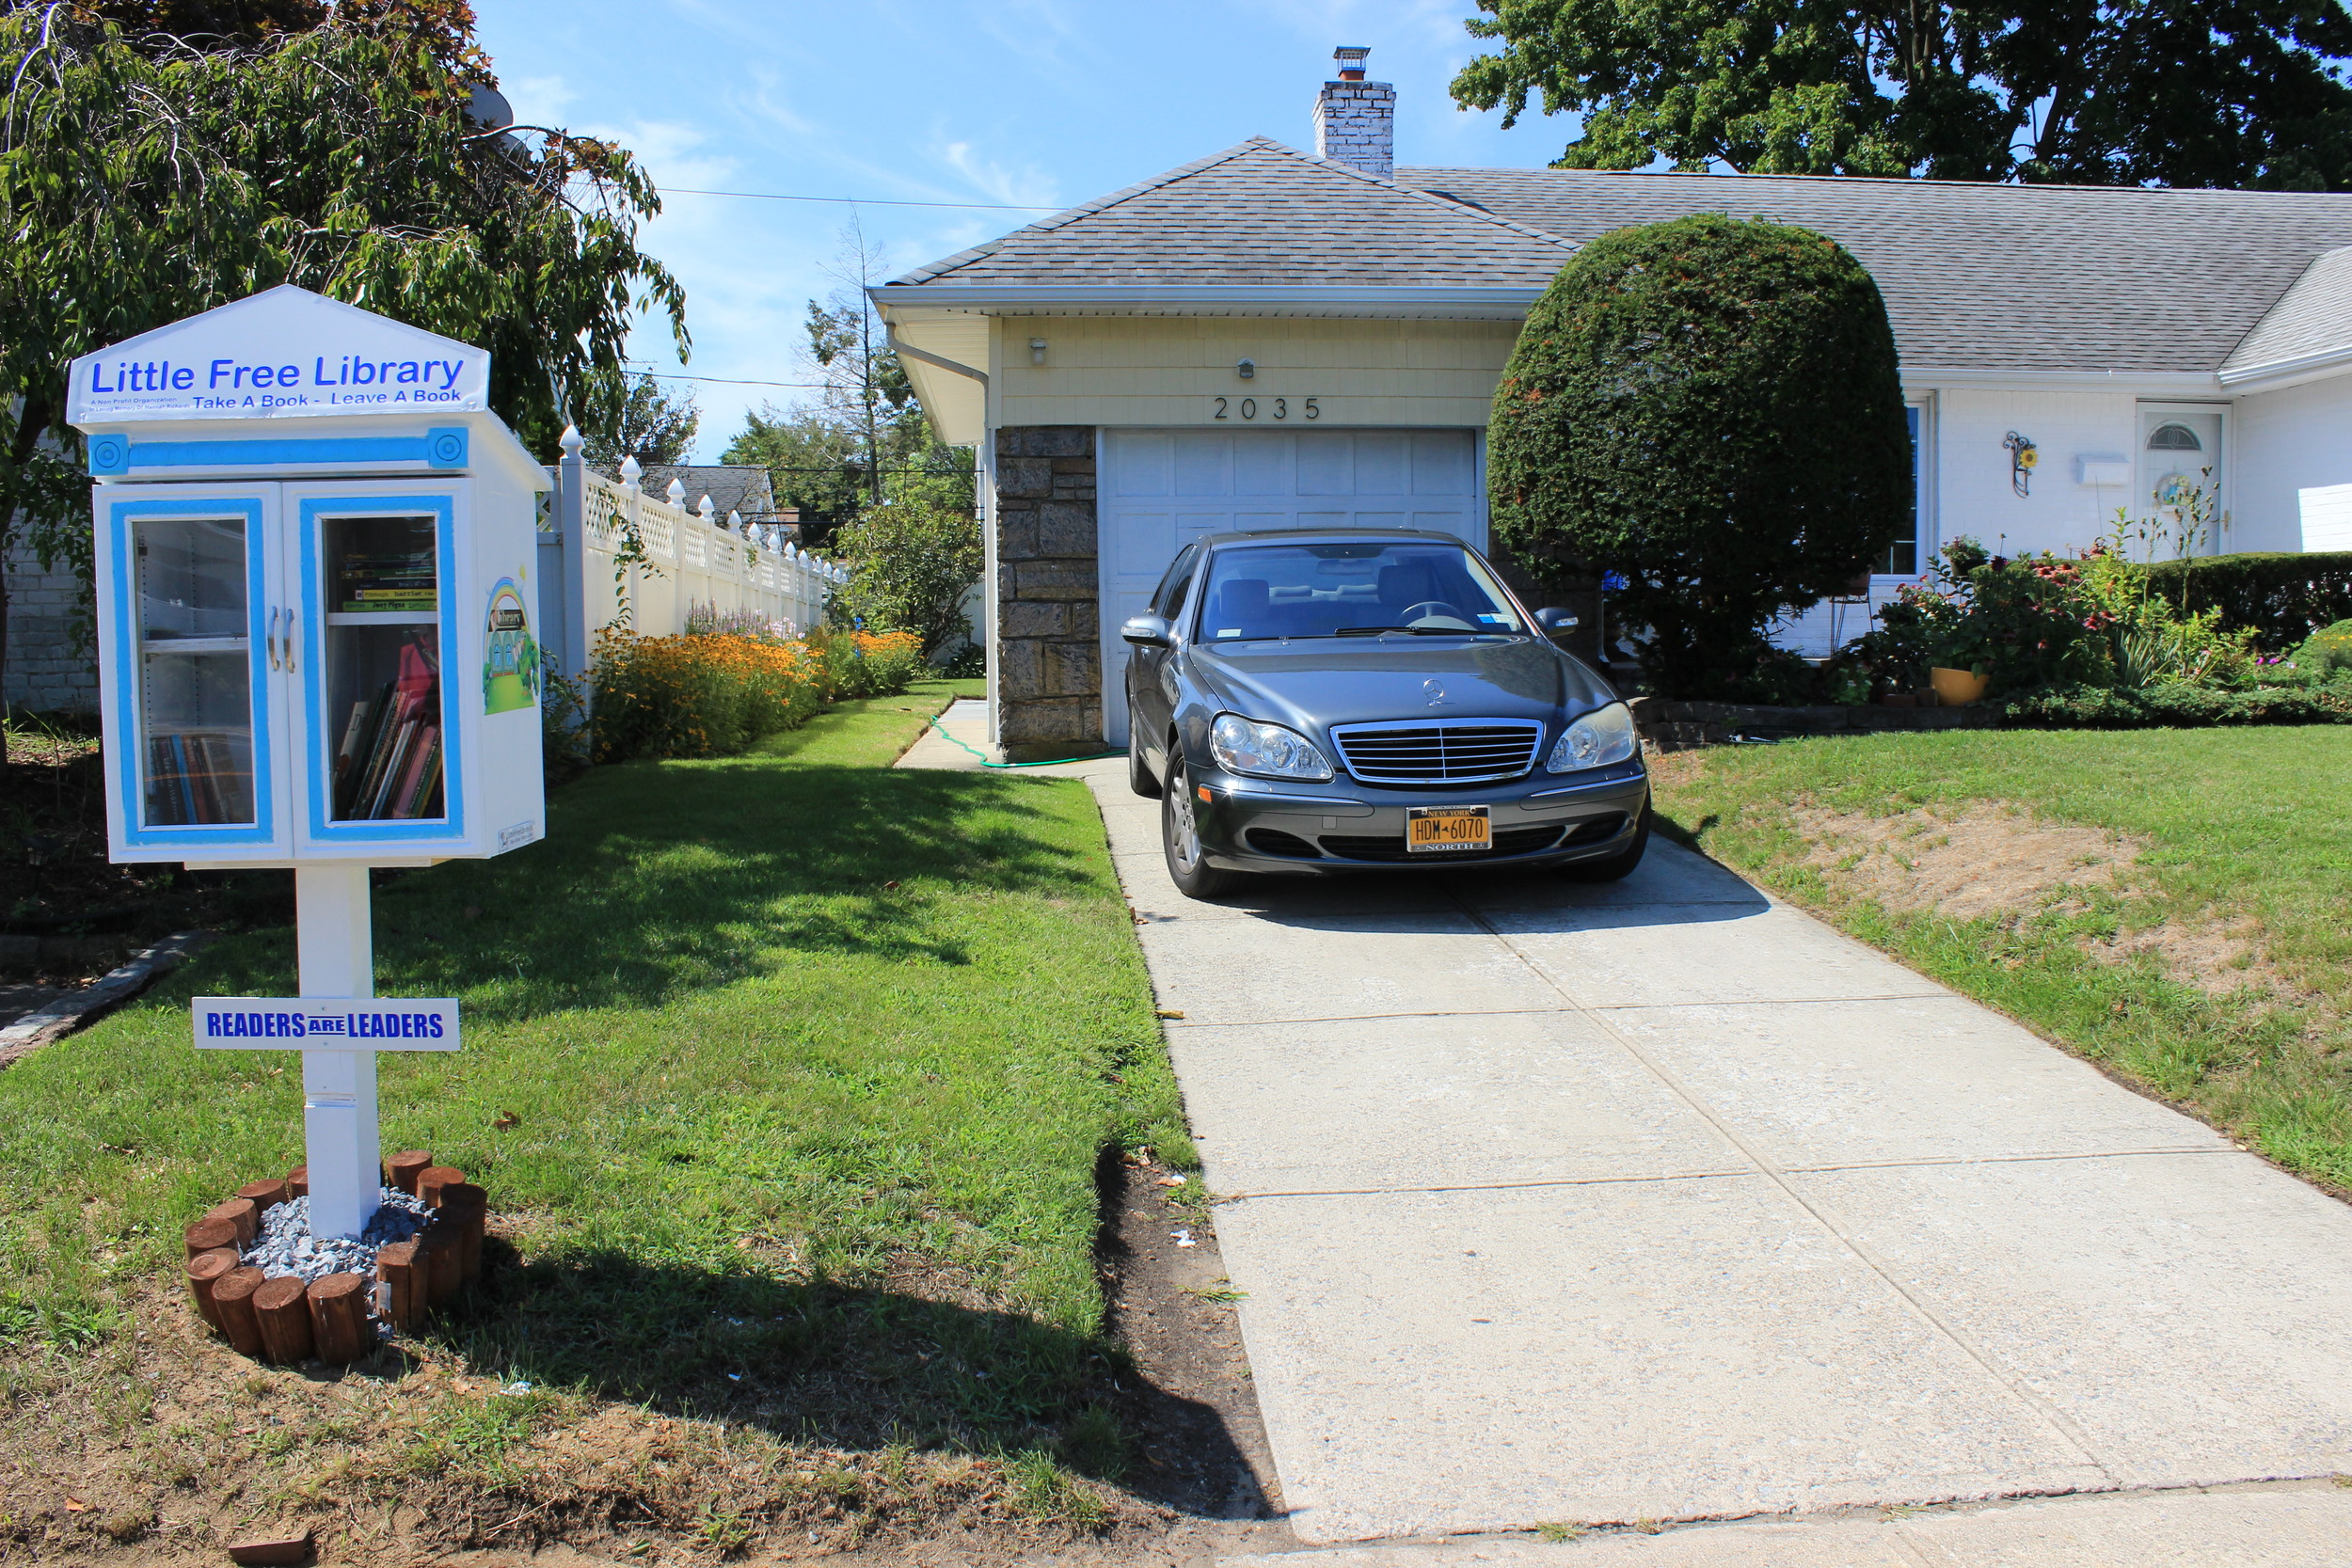 Marcia Richards-Morgan's Little Free Library sat at the end of her driveway, ready for reading enthusiasts.